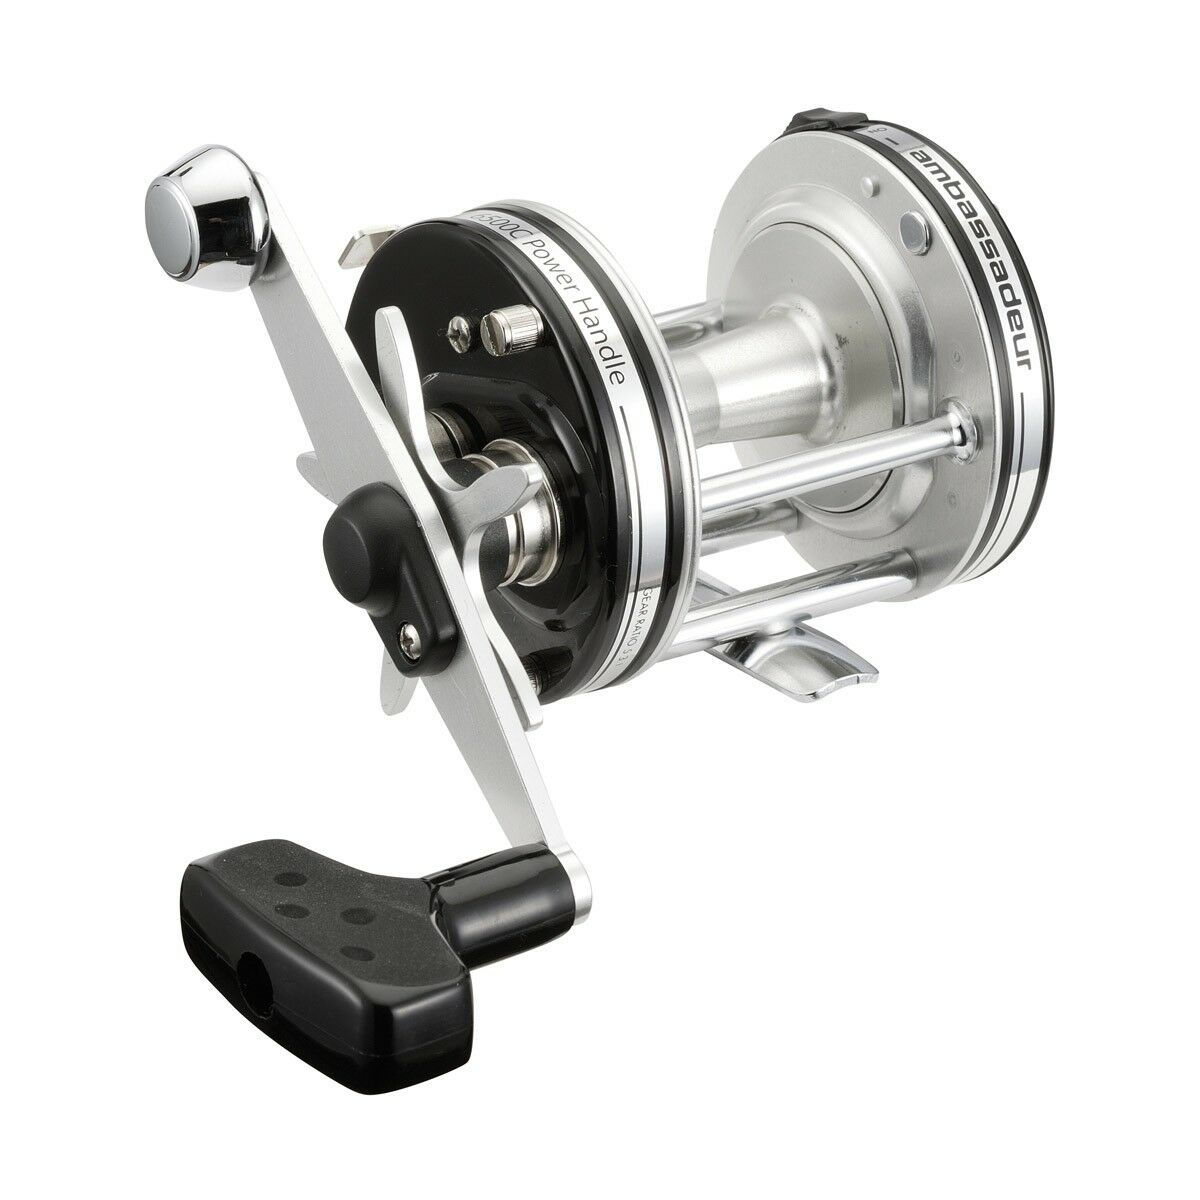 Abu Garcia 6500 Power Handle - All Models CT / CS